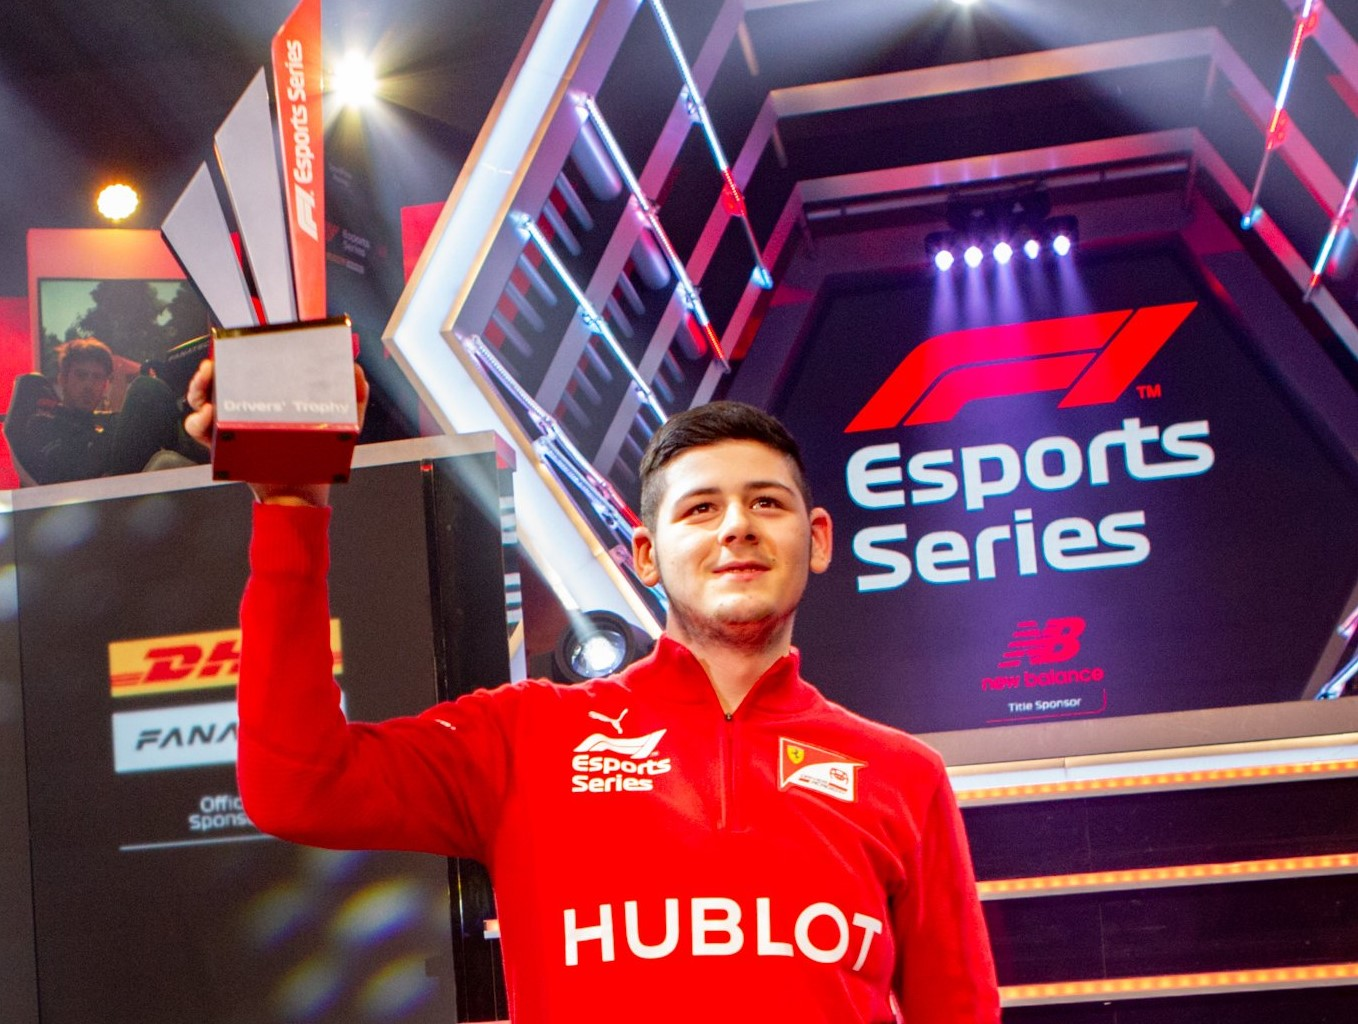 F1 Esports Pro Series 2019: Tonizza couronné champion